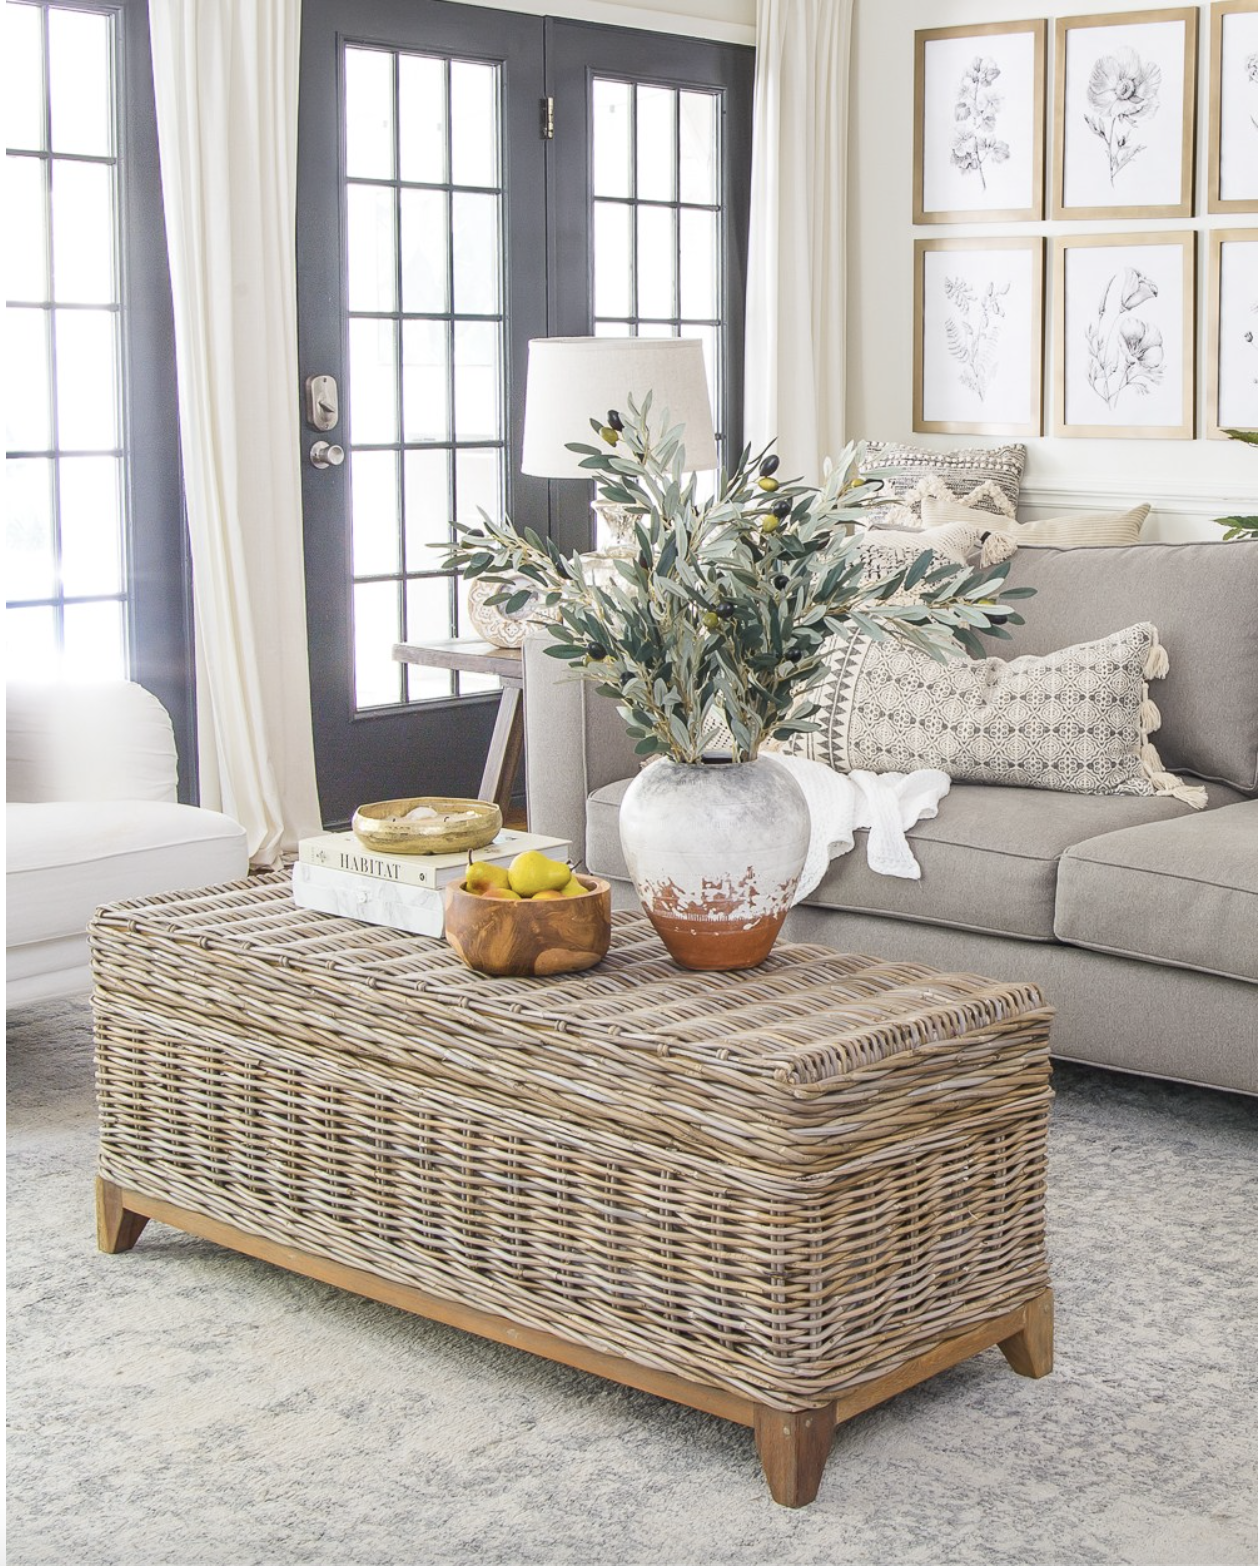 9 Kid-Friendly Coffee Tables & How to Style Them - Shades ...